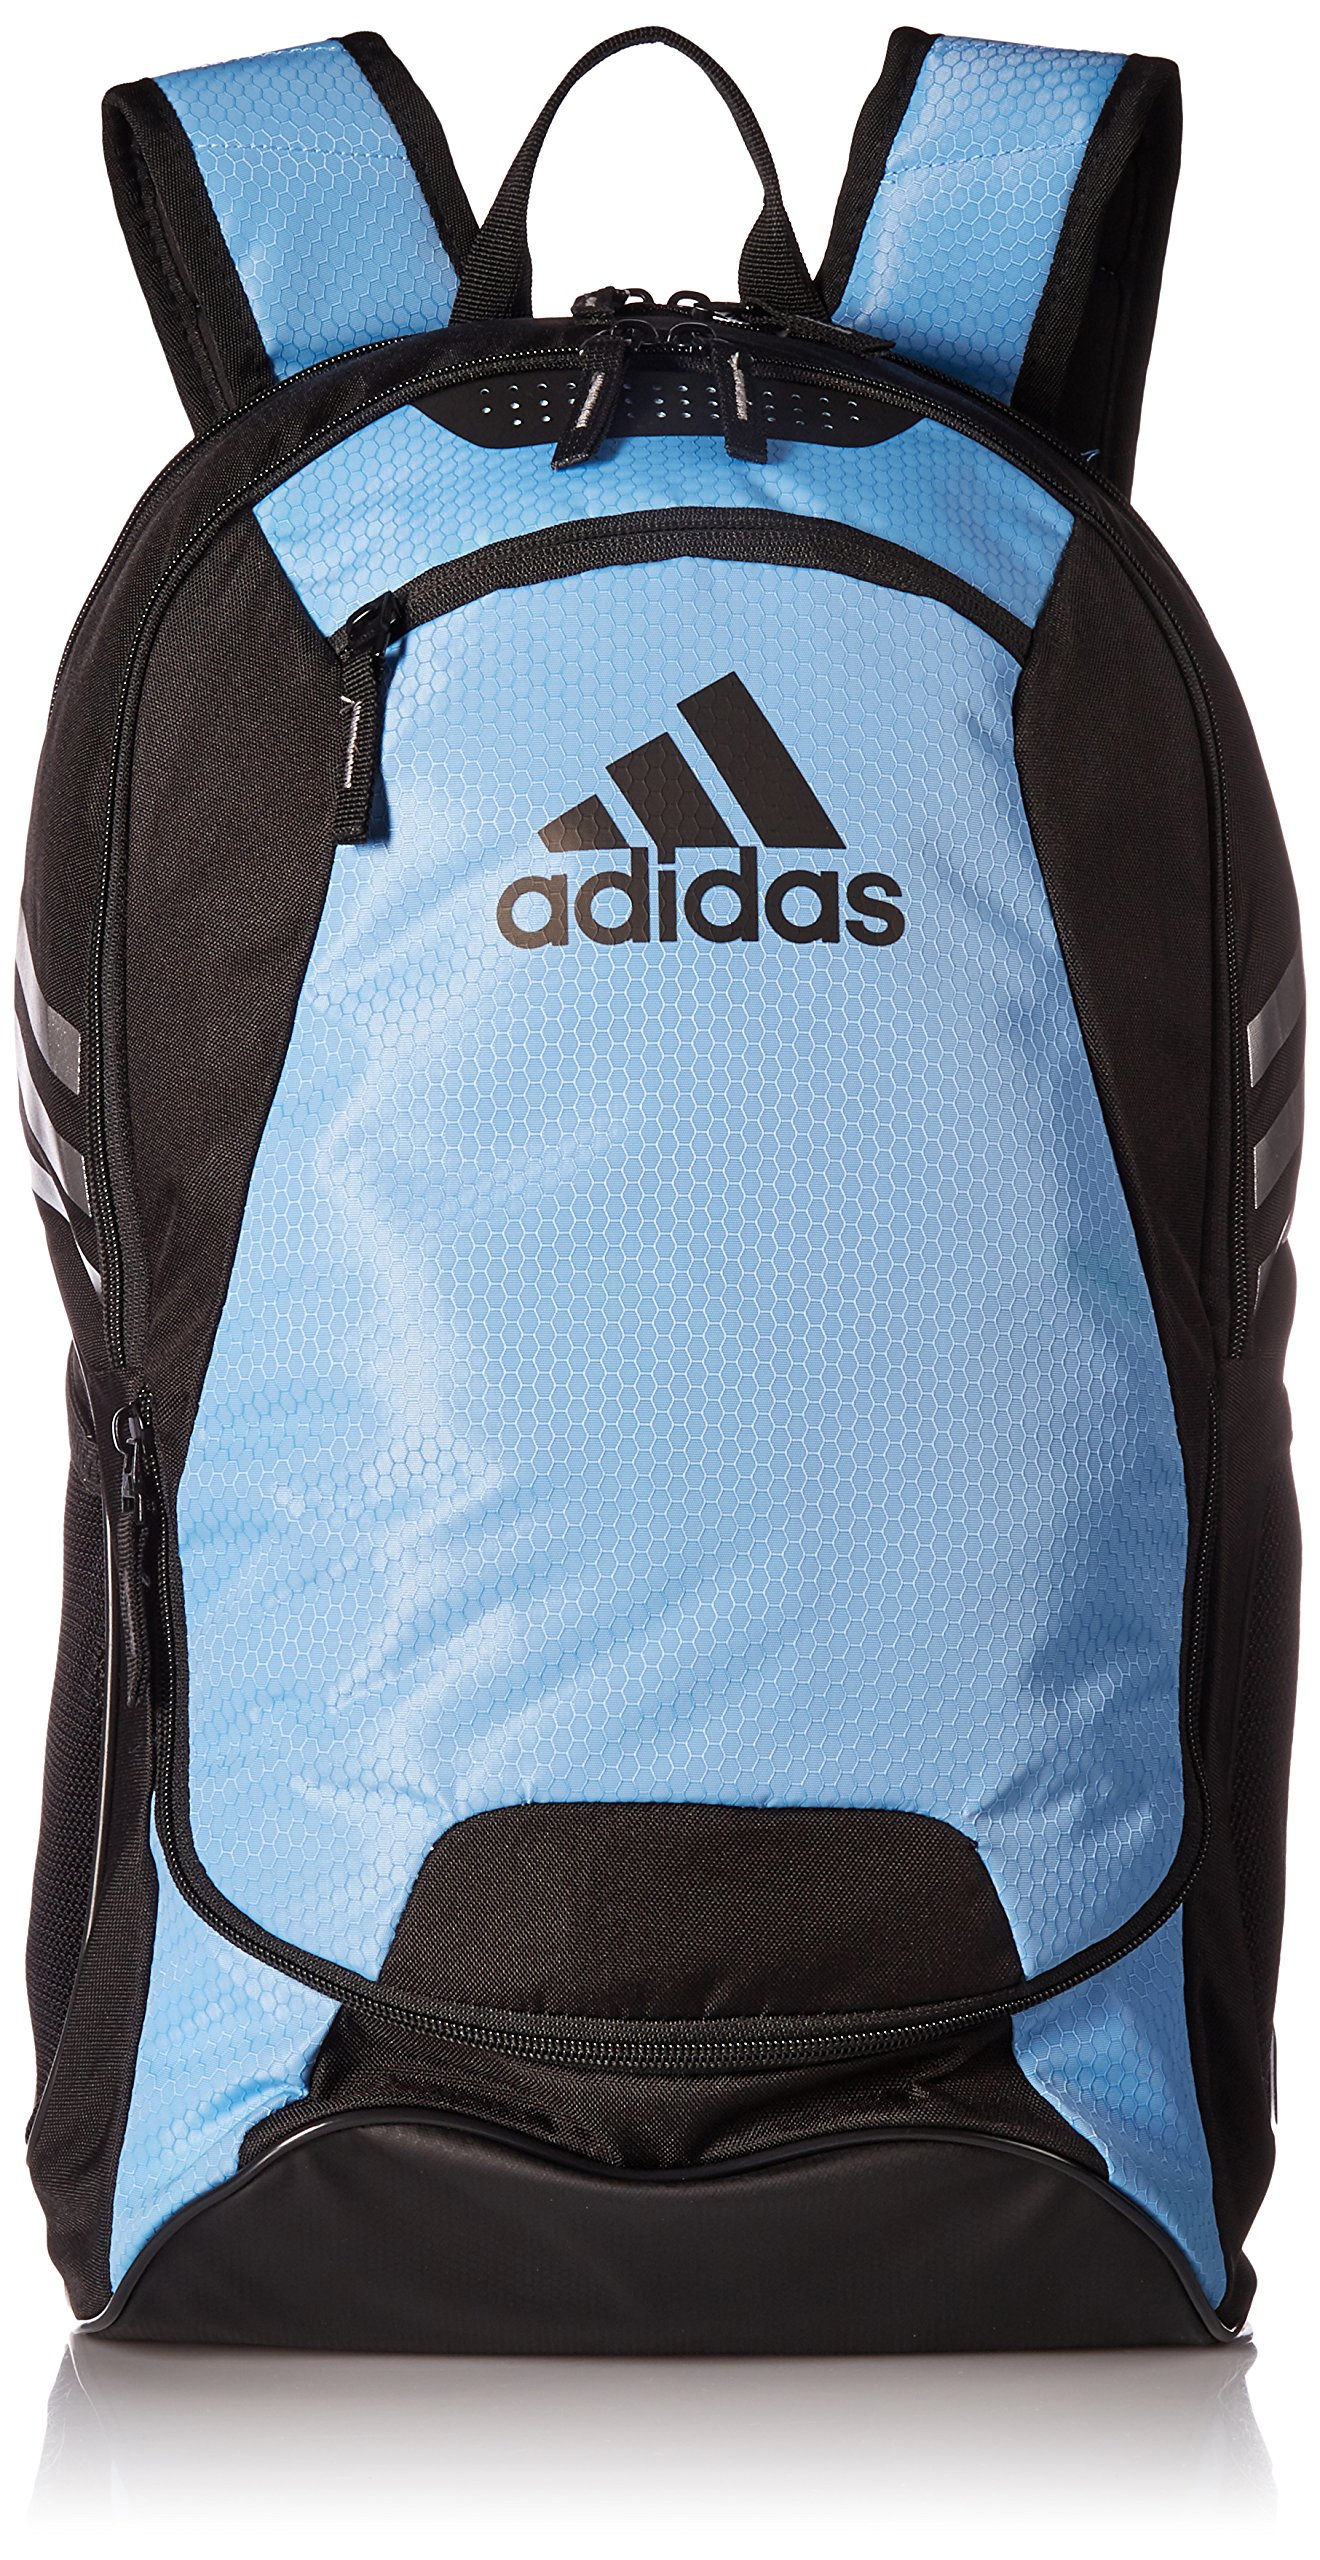 adidas Stadium II Backpack, Collegiate Light Blue, One Size